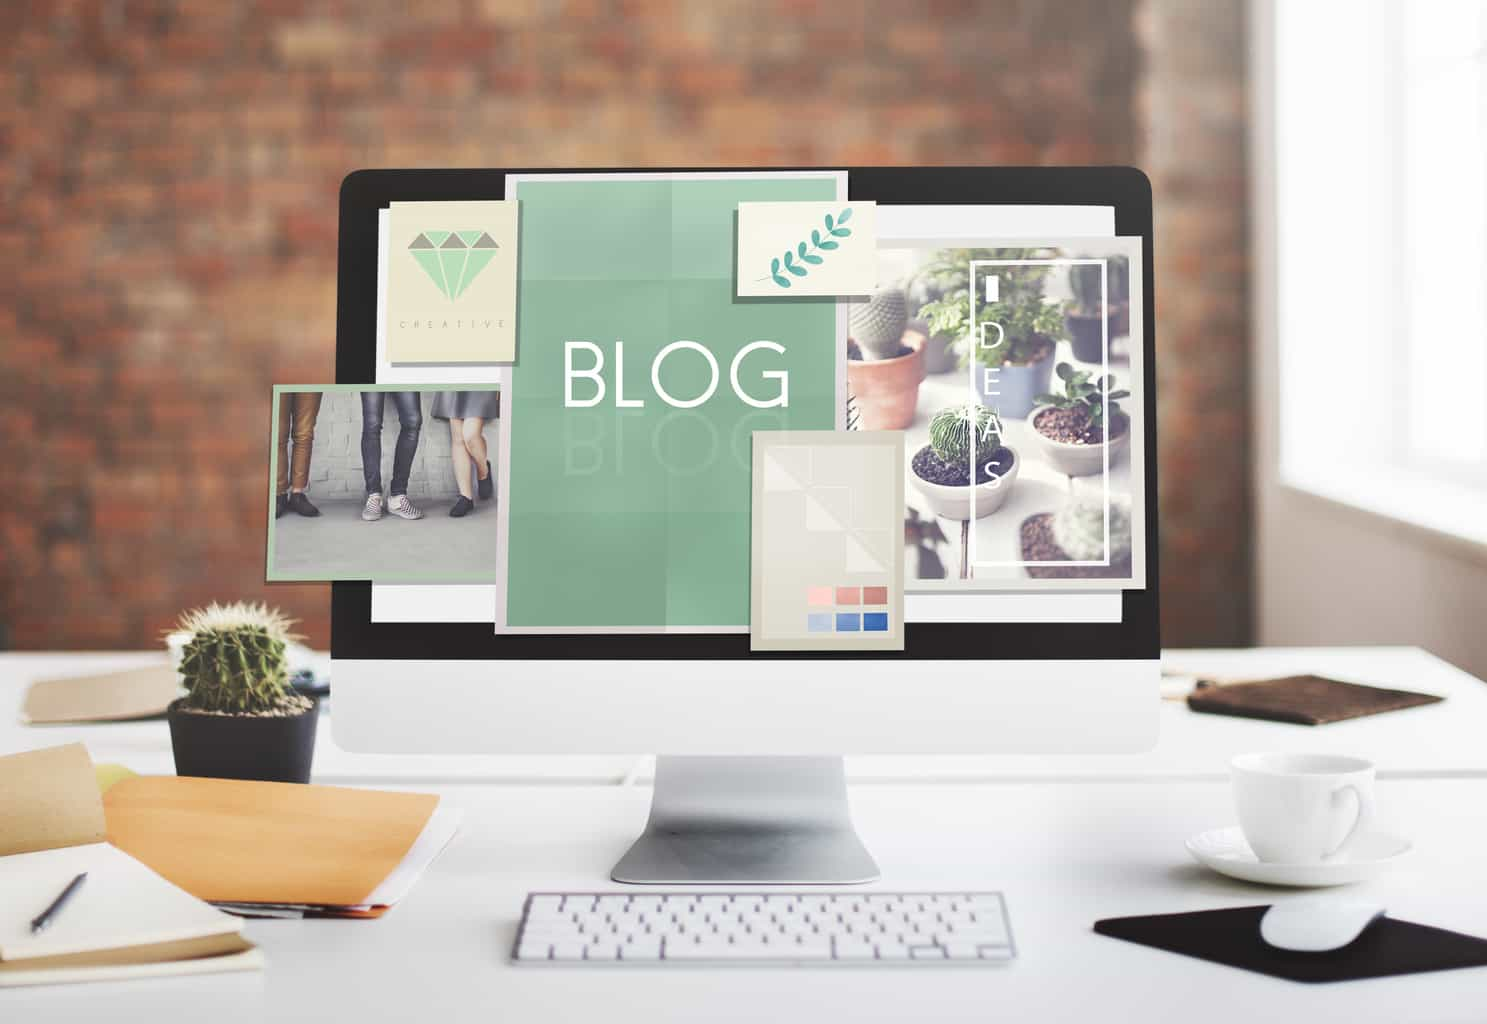 Design Your Blog 5 Topic With Html, CSS